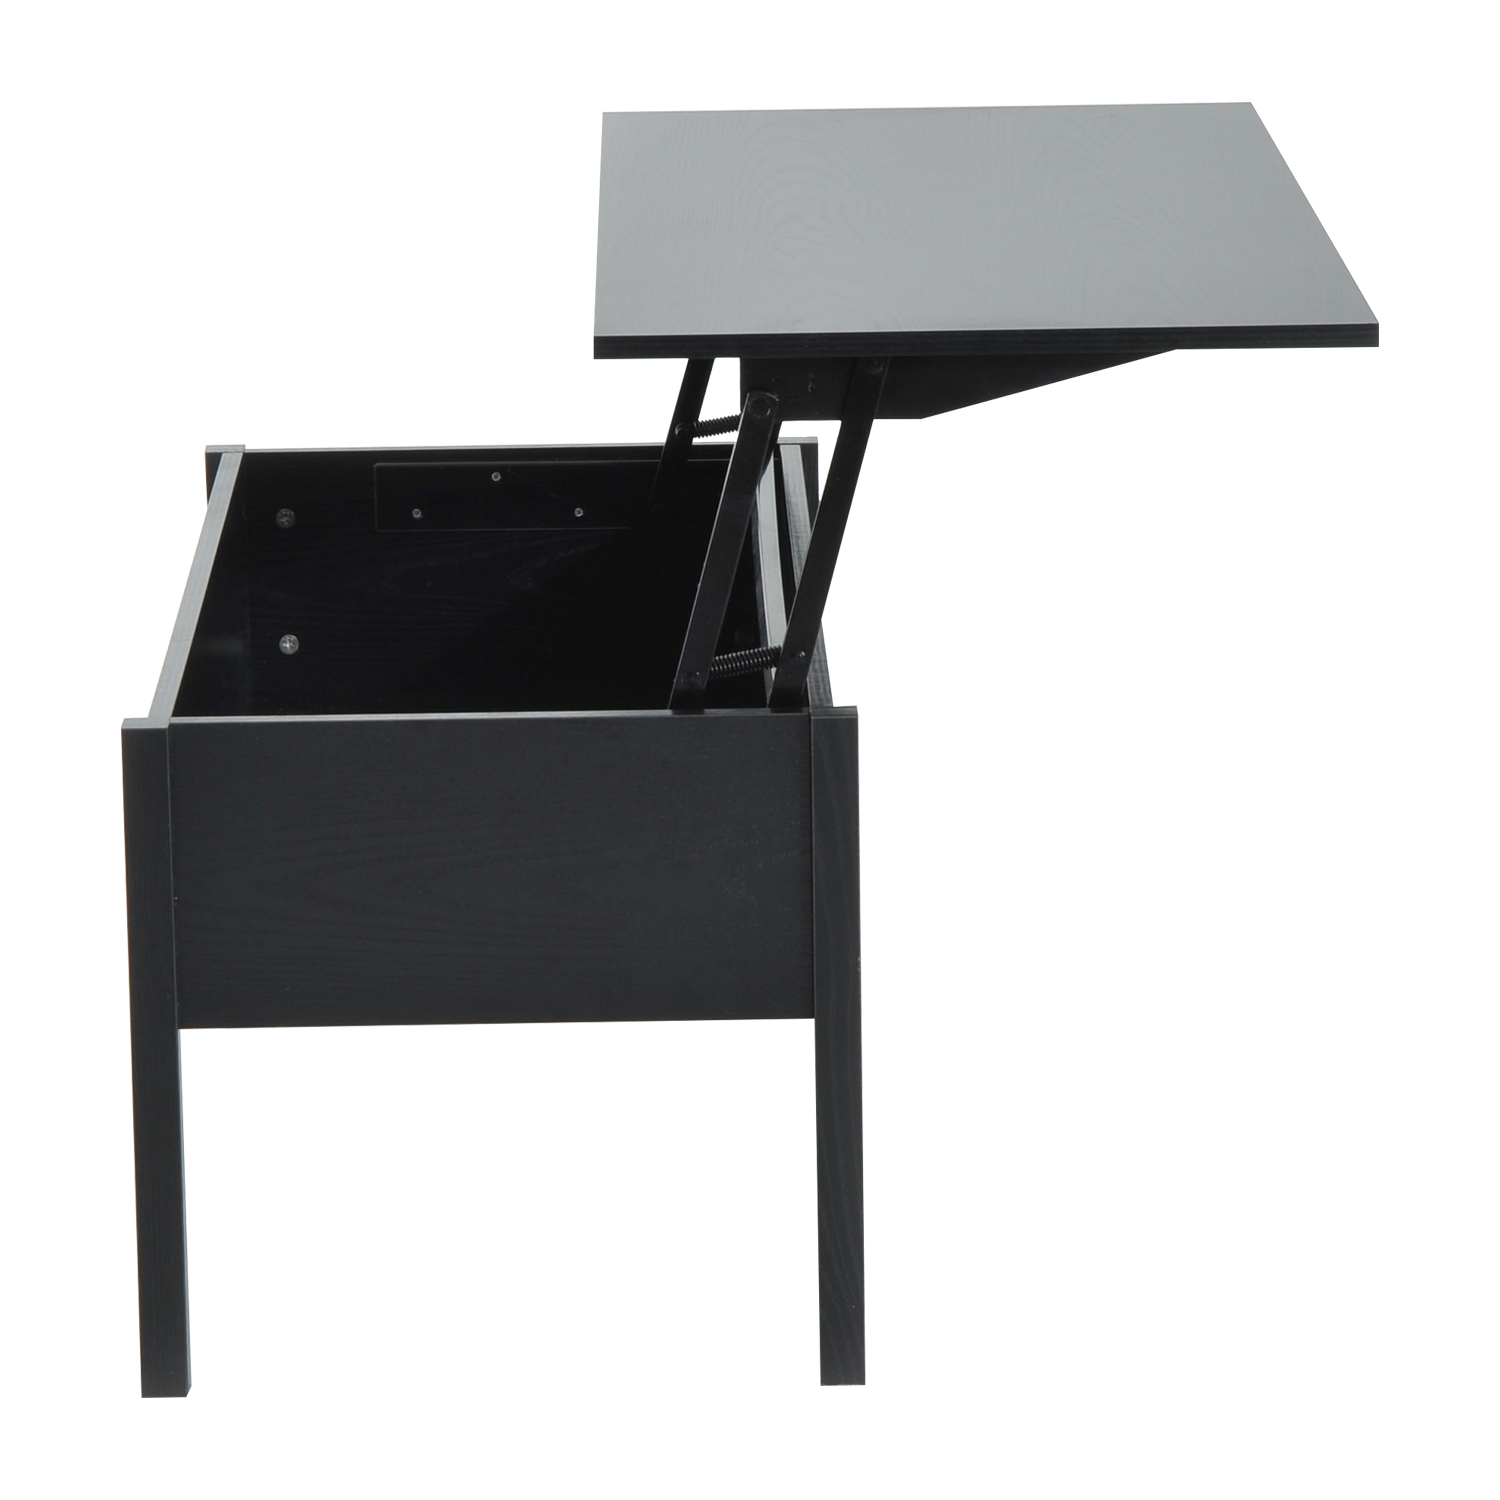 39-Modern-Lift-Top-Coffee-Table-Floating-Retractable-Lift-Top-Hidden-Storage thumbnail 6